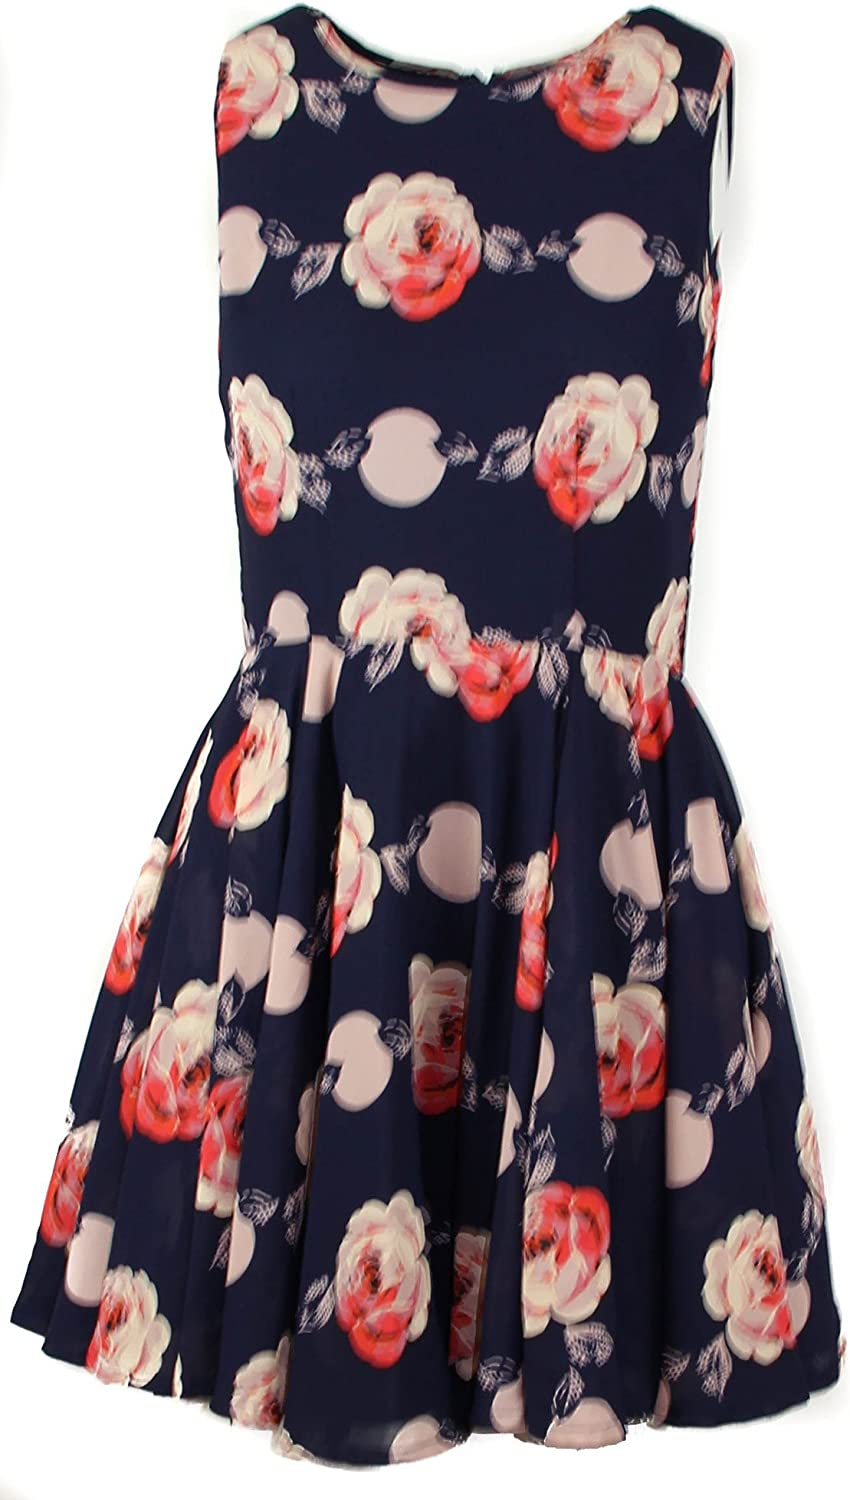 Maison Jules Women's Floral Print Fit and Flare Dress